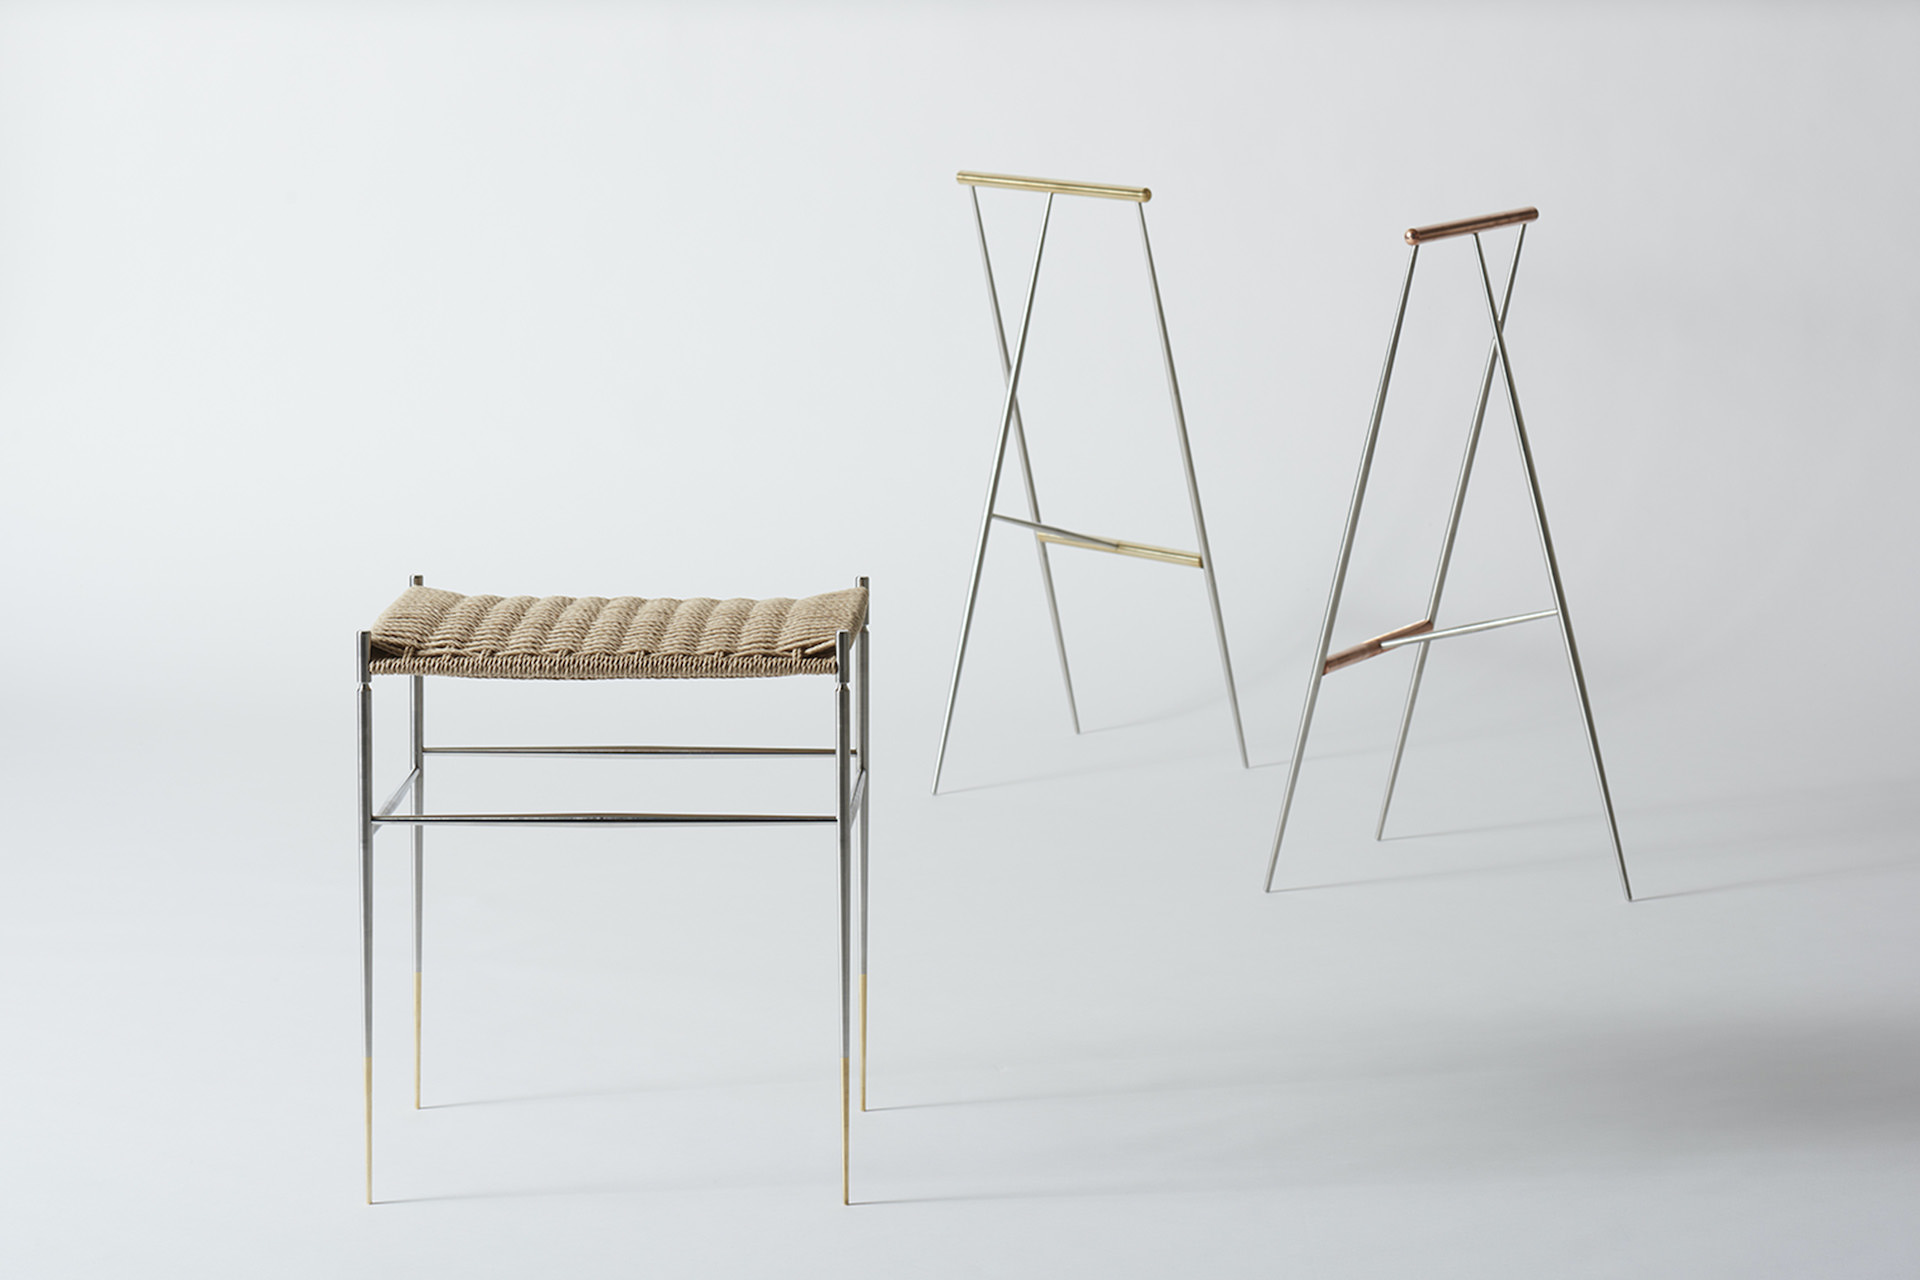 AXIS  -milano salone 2015 Axis of rotation-